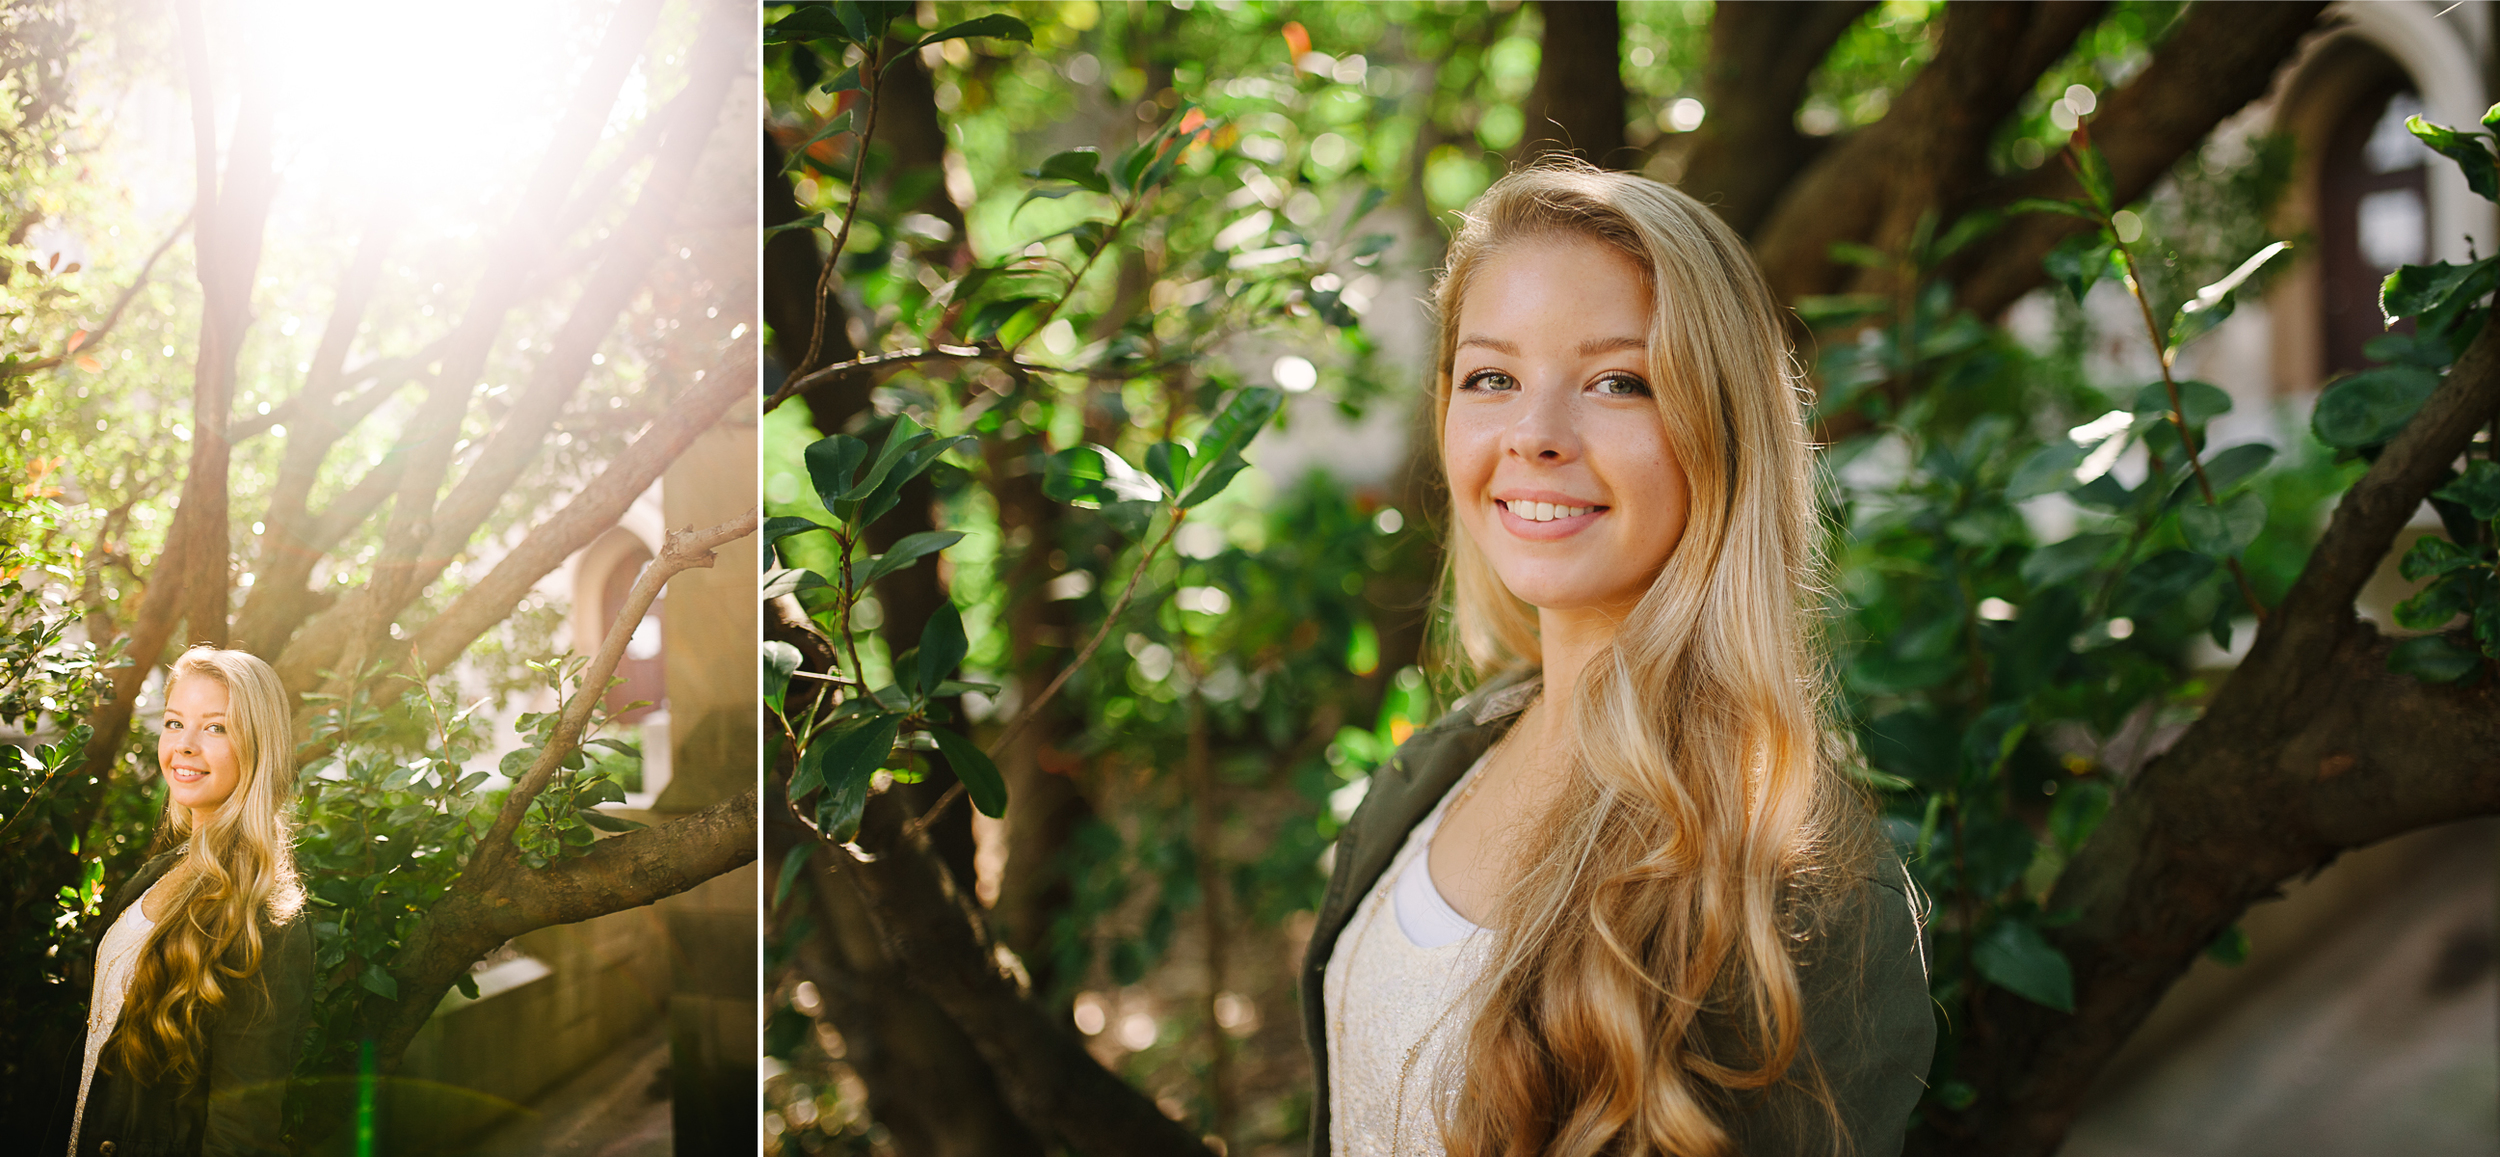 Free-spirited high school senior photos by Tara Polly Photography